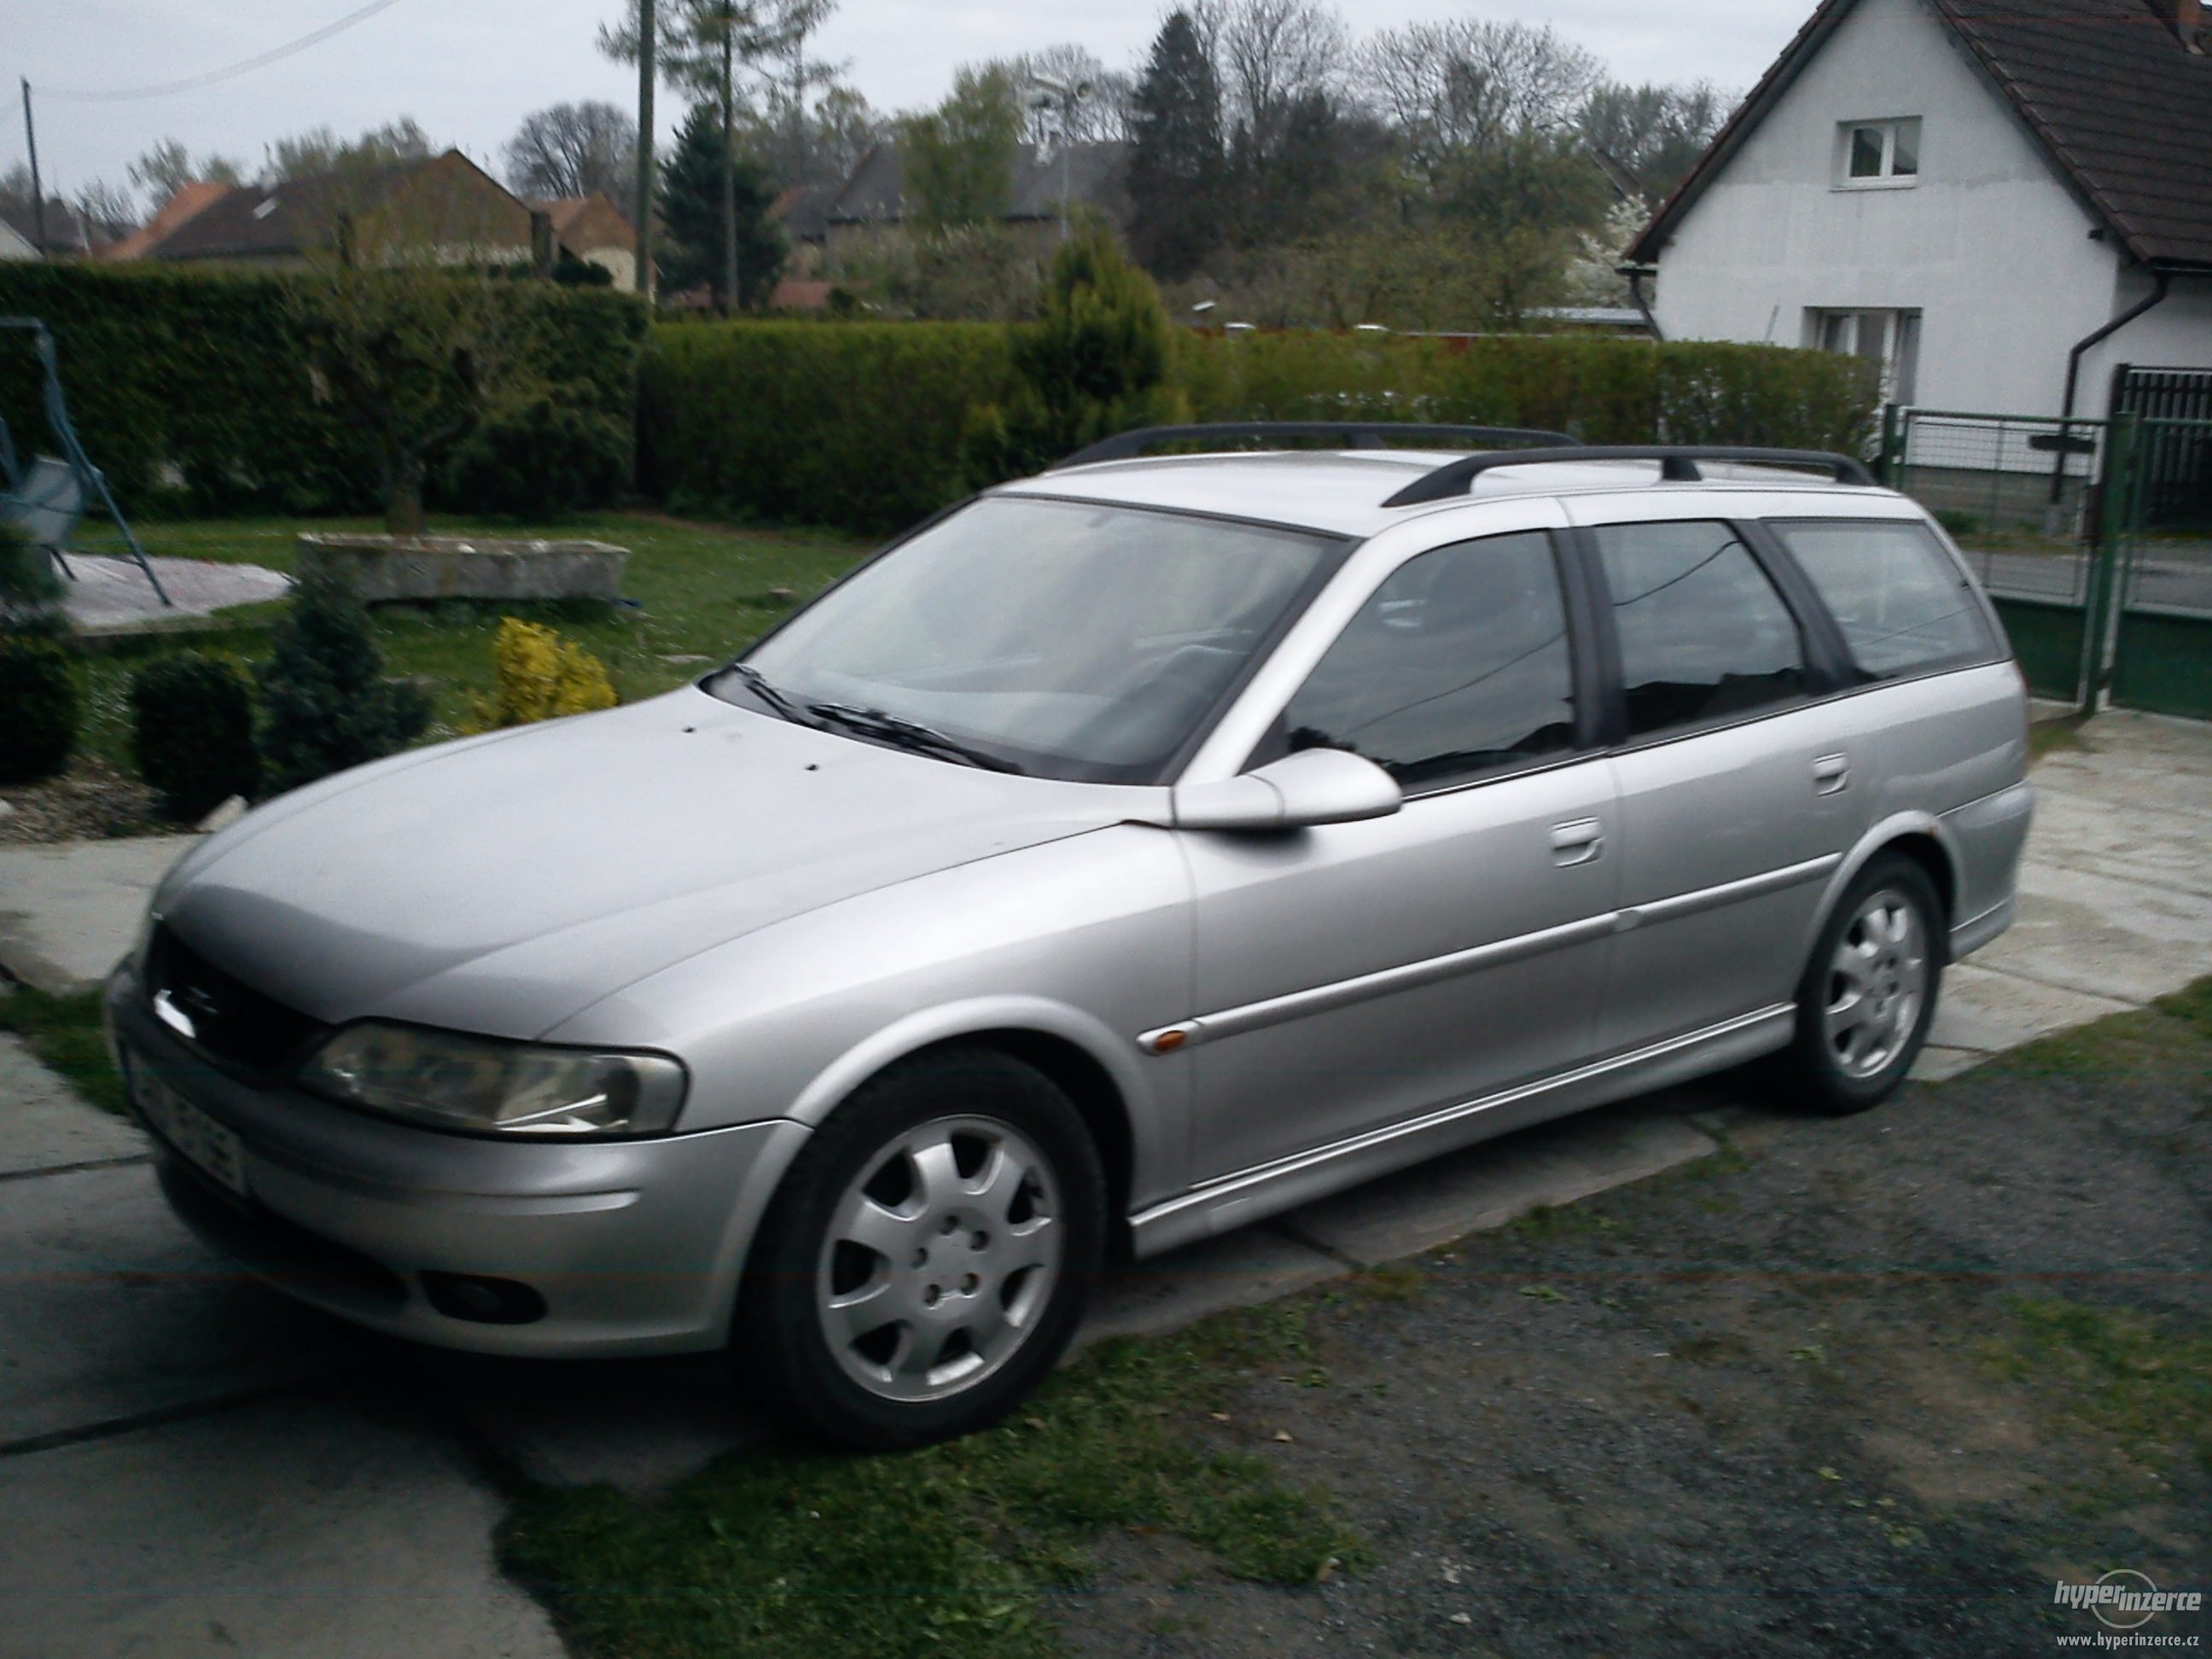 opel vectra a wiring diagram 2000 opel vectra b cc ndash pictures information and specs opel vectra b dunkelgrn